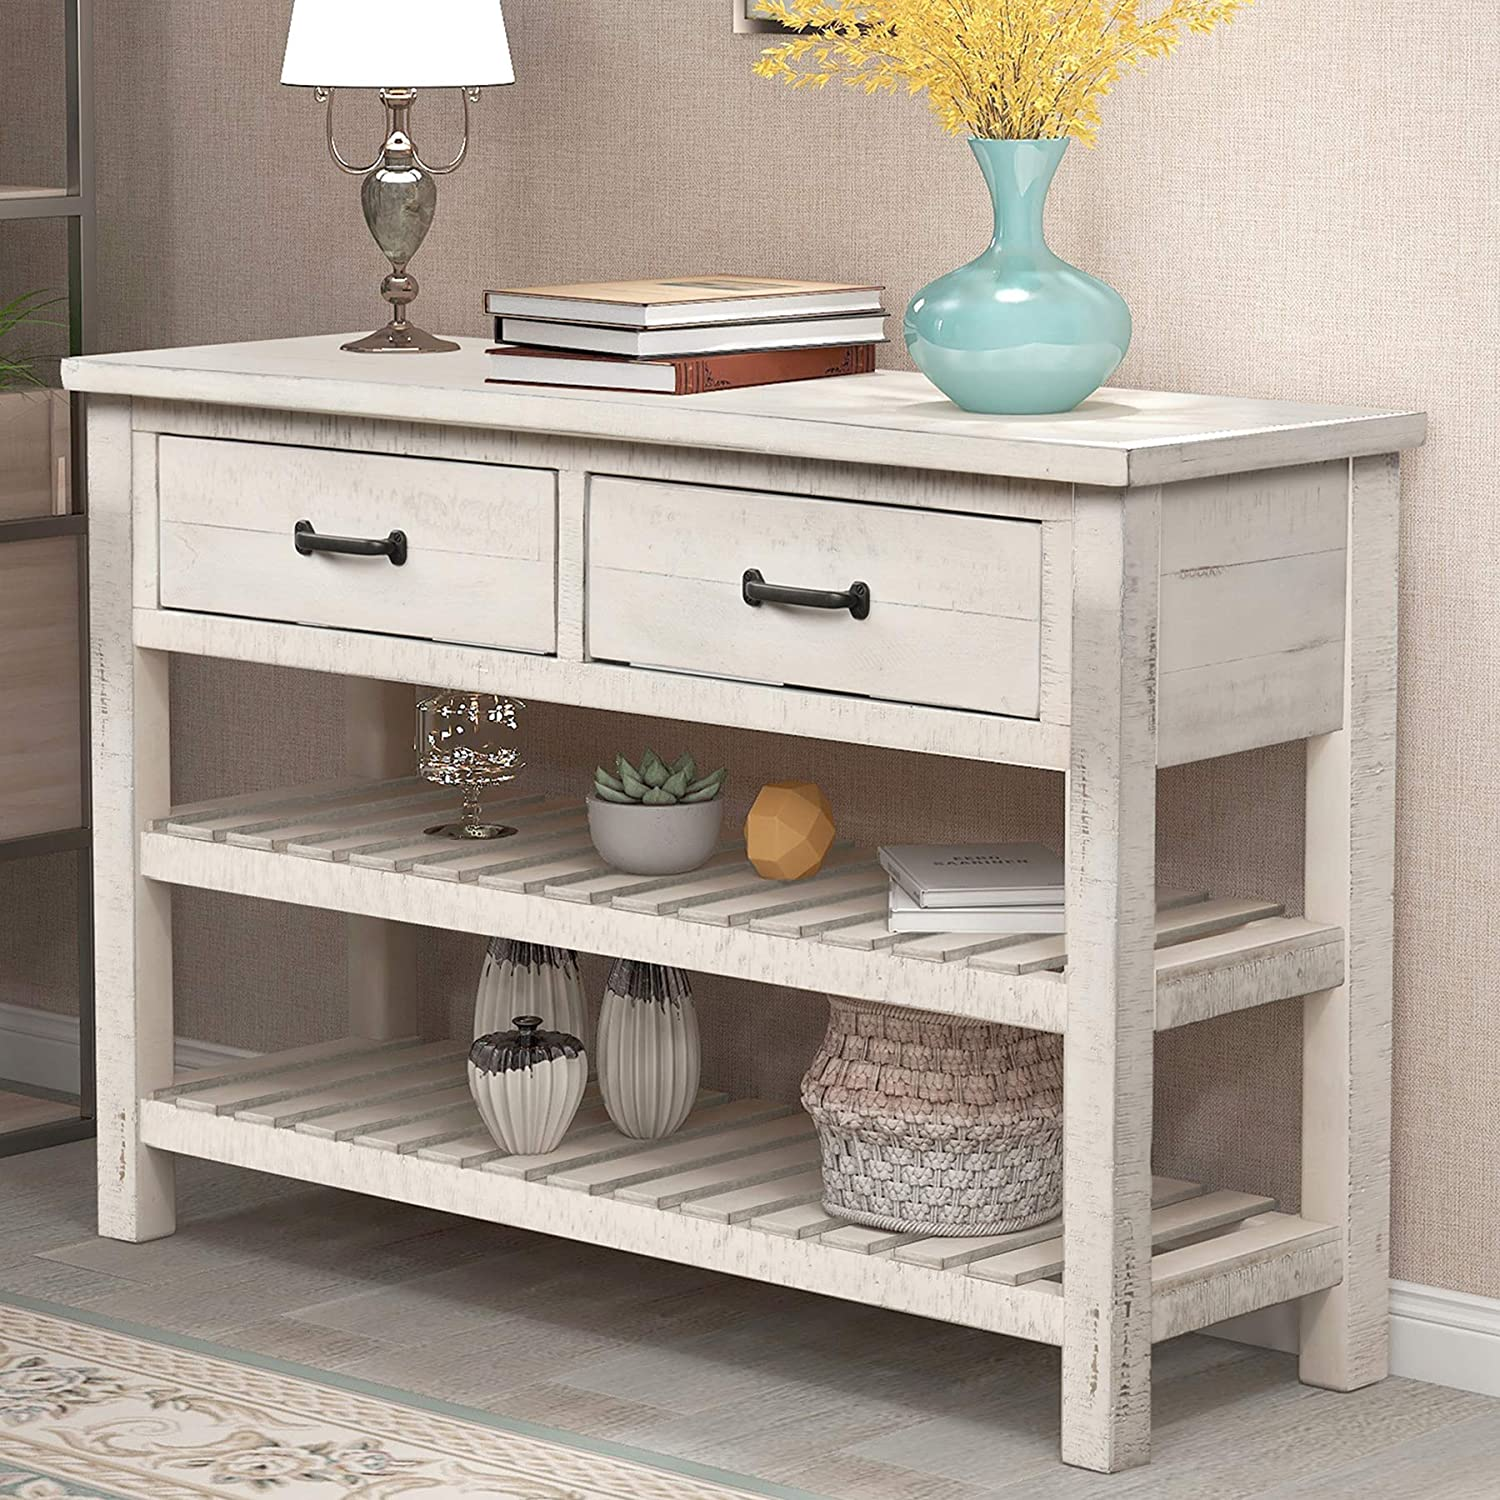 Enjoy fast, free nationwide shipping!  Owned by a husband and wife team of high-school music teachers, HawkinsWoodshop.com is your one stop shop for affordable furniture.  Shop HawkinsWoodshop.com for solid wood & metal modern, traditional, contemporary, industrial, custom, rustic, and farmhouse furniture including our Tiffany Blue Console Table w/ Drawers.